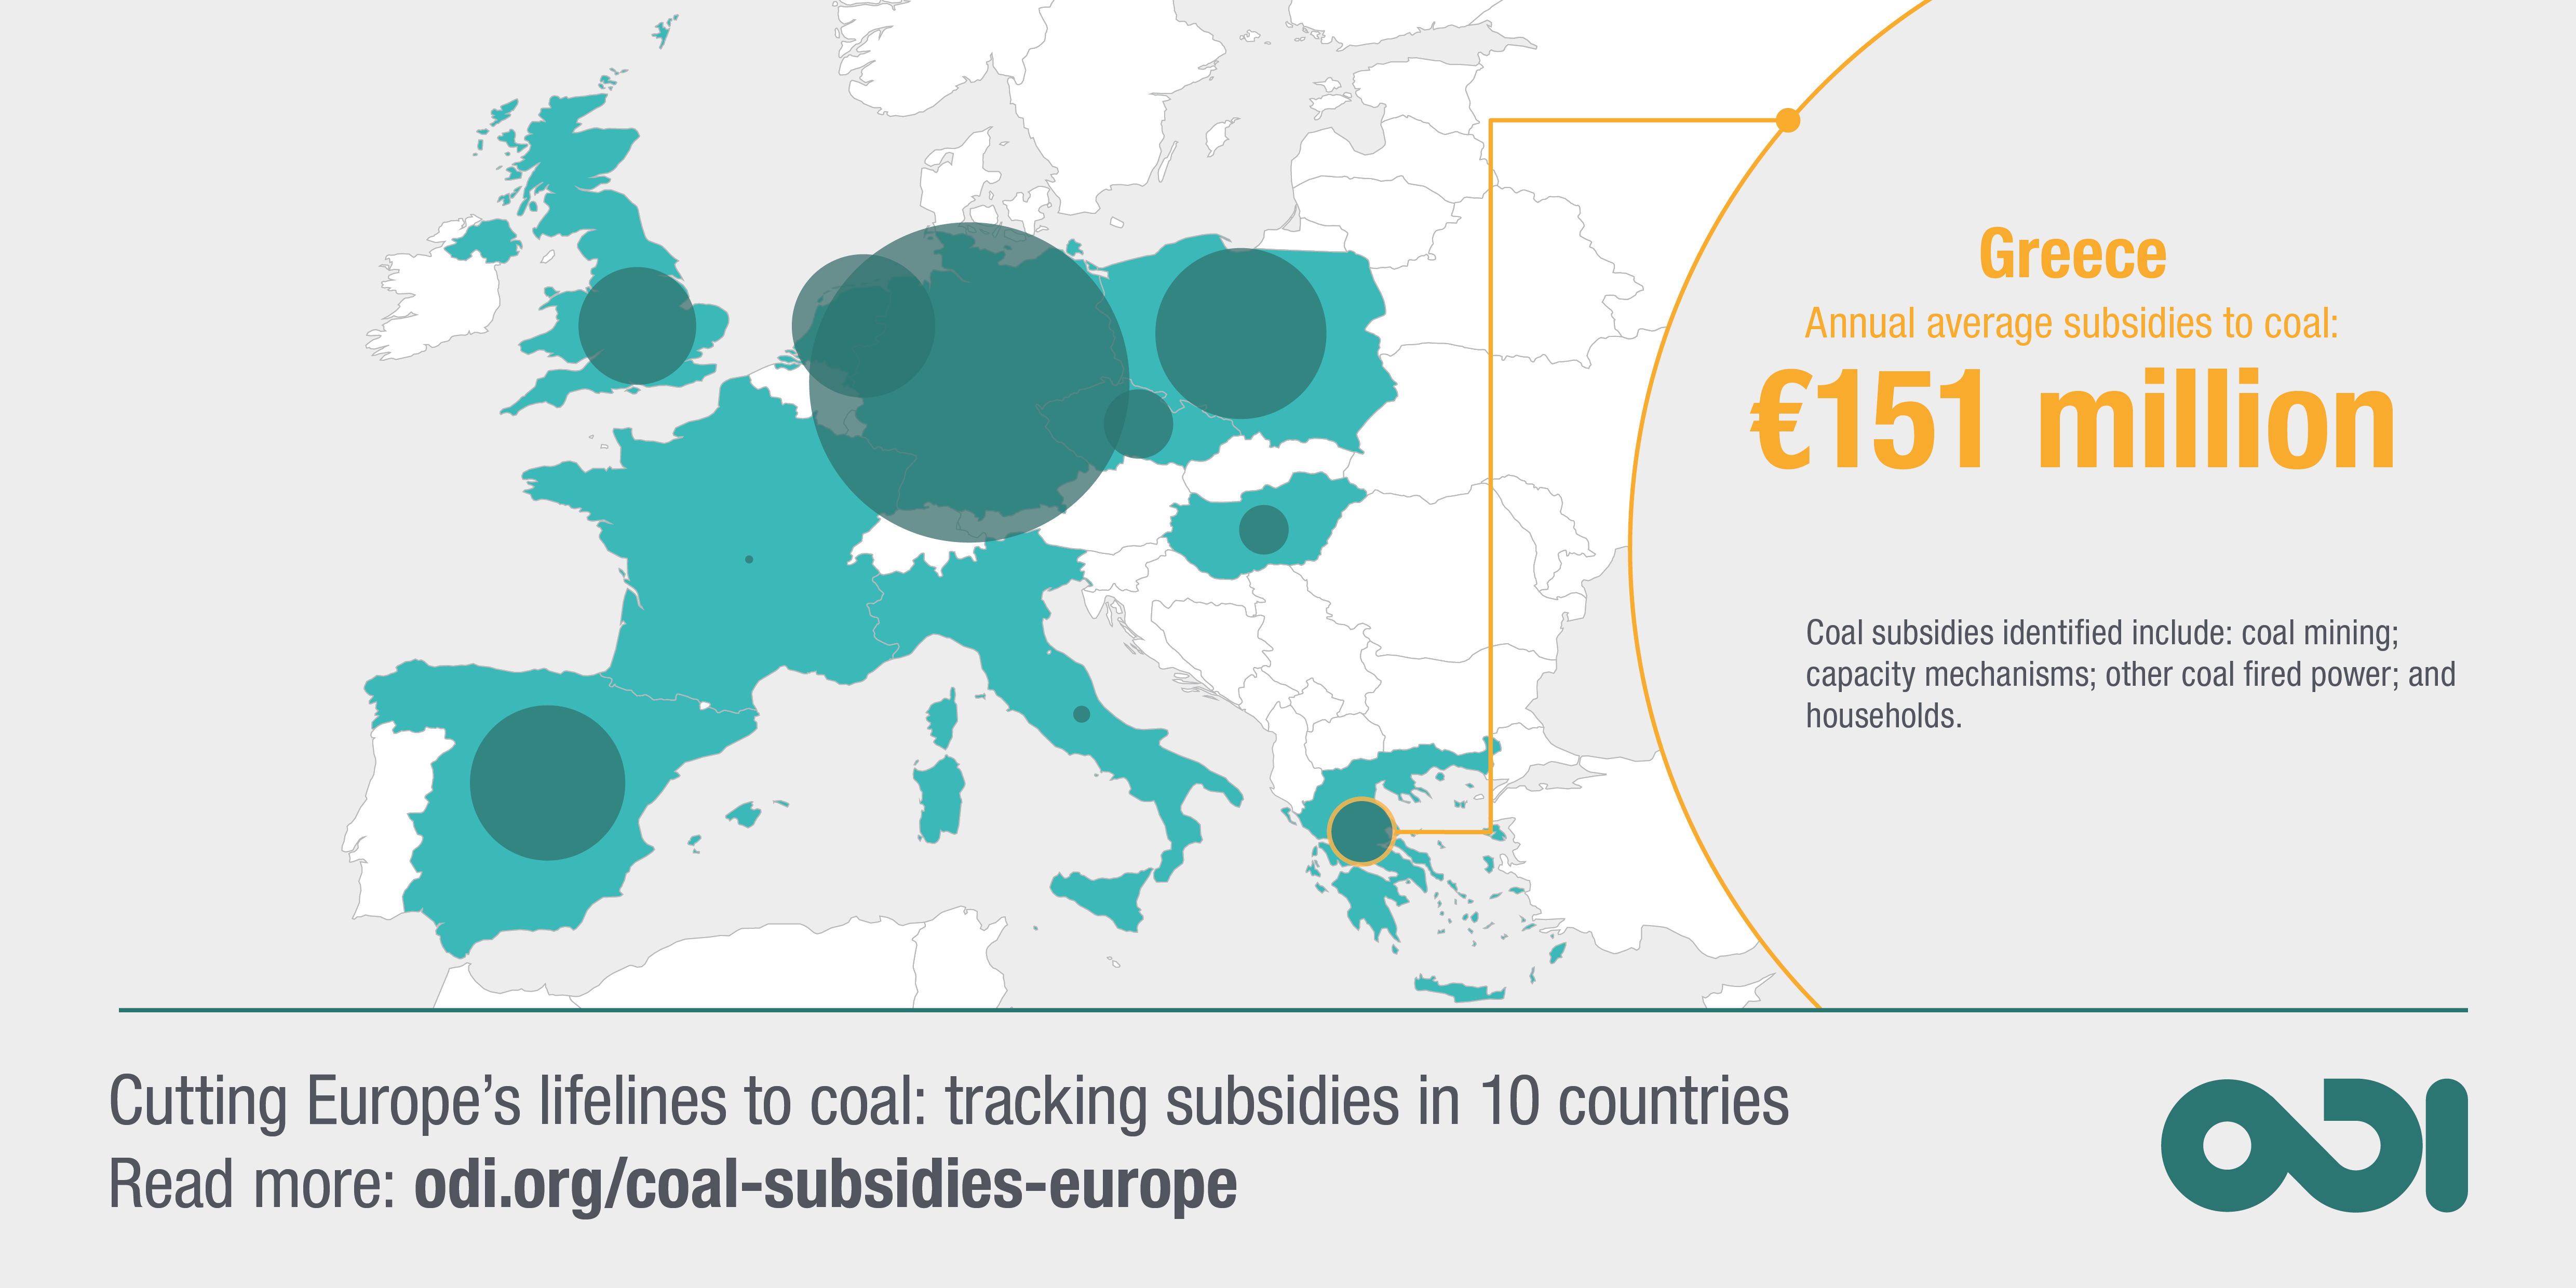 Infographic: Coal subsidies in Greece